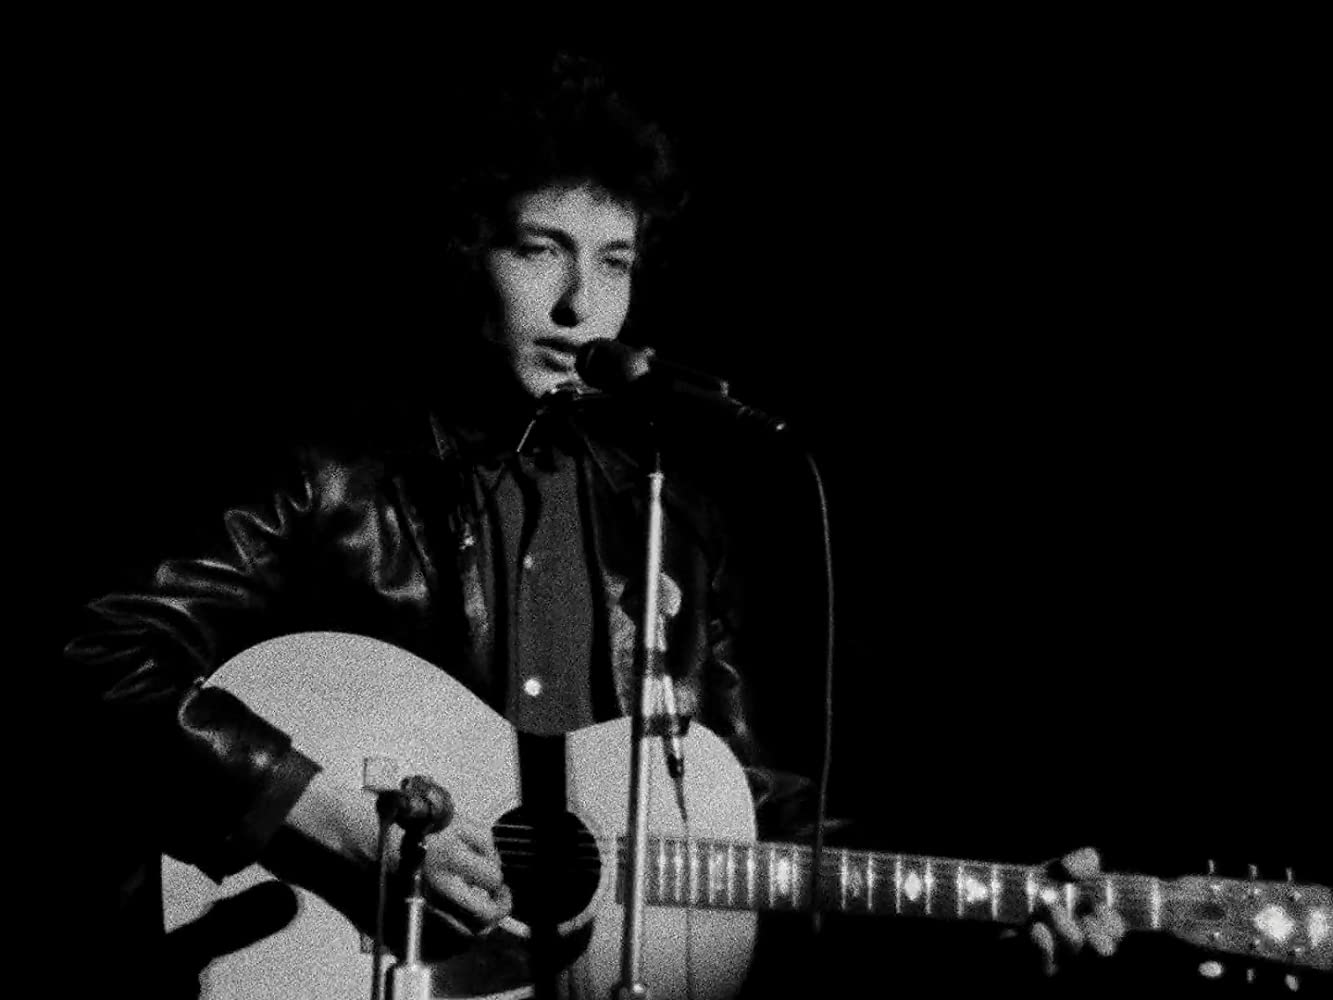 Bob Dylan in Dont Look Back (1967)